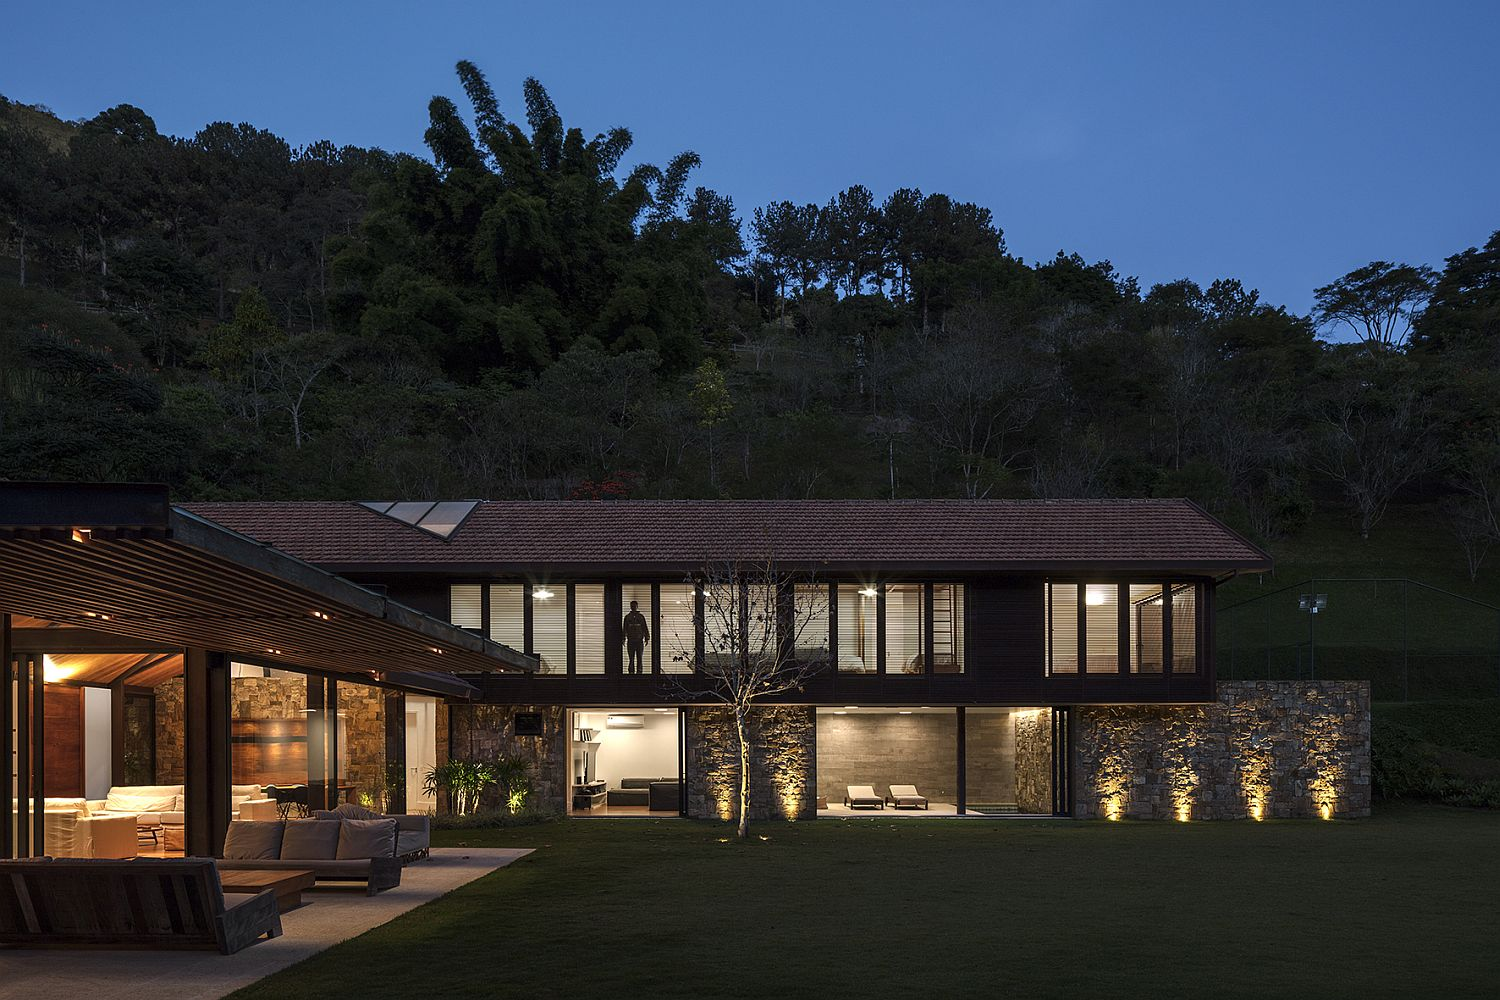 Gorgeous lighting and lovely natural landscape add to the beauty of the AS House